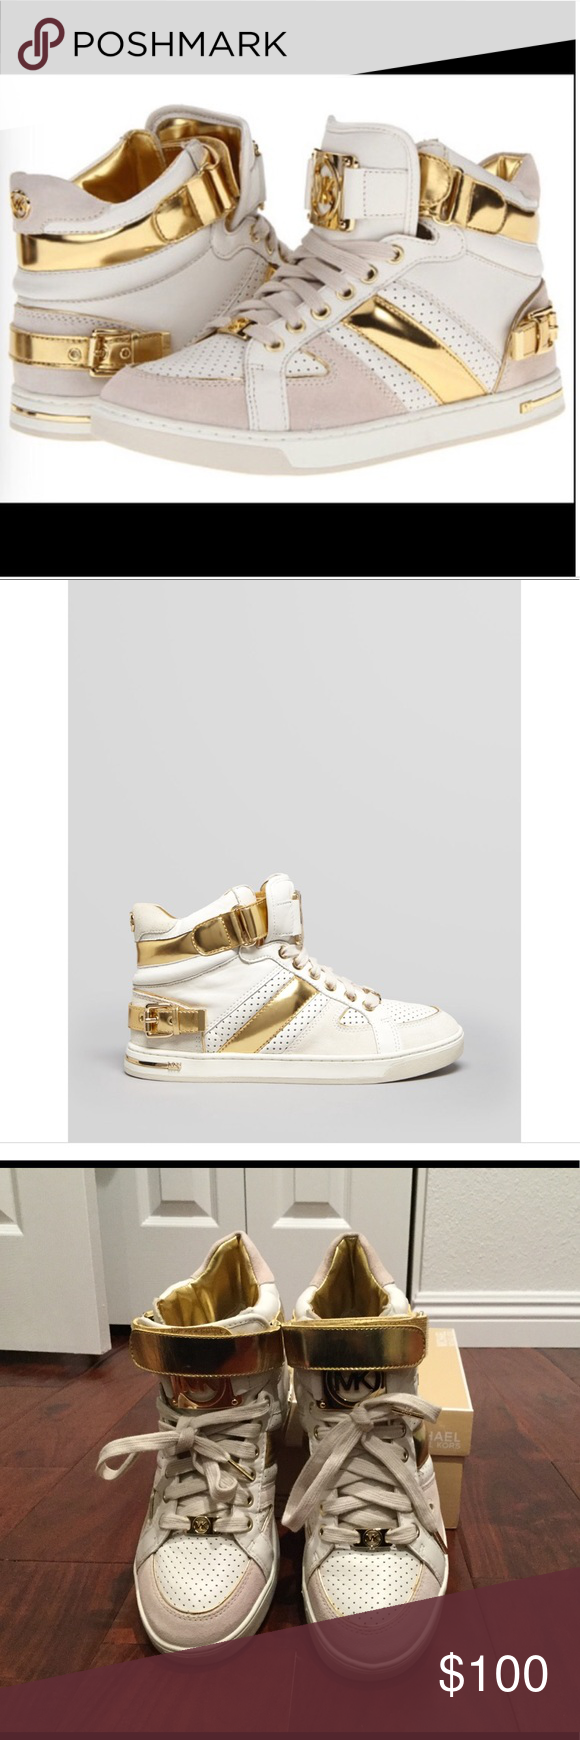 """Michael Kors Sneakers Michael Kors """"Fulton"""" high top Sneakers. Lace up with functional Velcro strap. Decorative buckle at heel, metallic accents and piping. Leather and man made upper, leather lining/fabric lining and rubber sole. NWB. Size 9.5 Michael Kors Shoes Sneakers"""